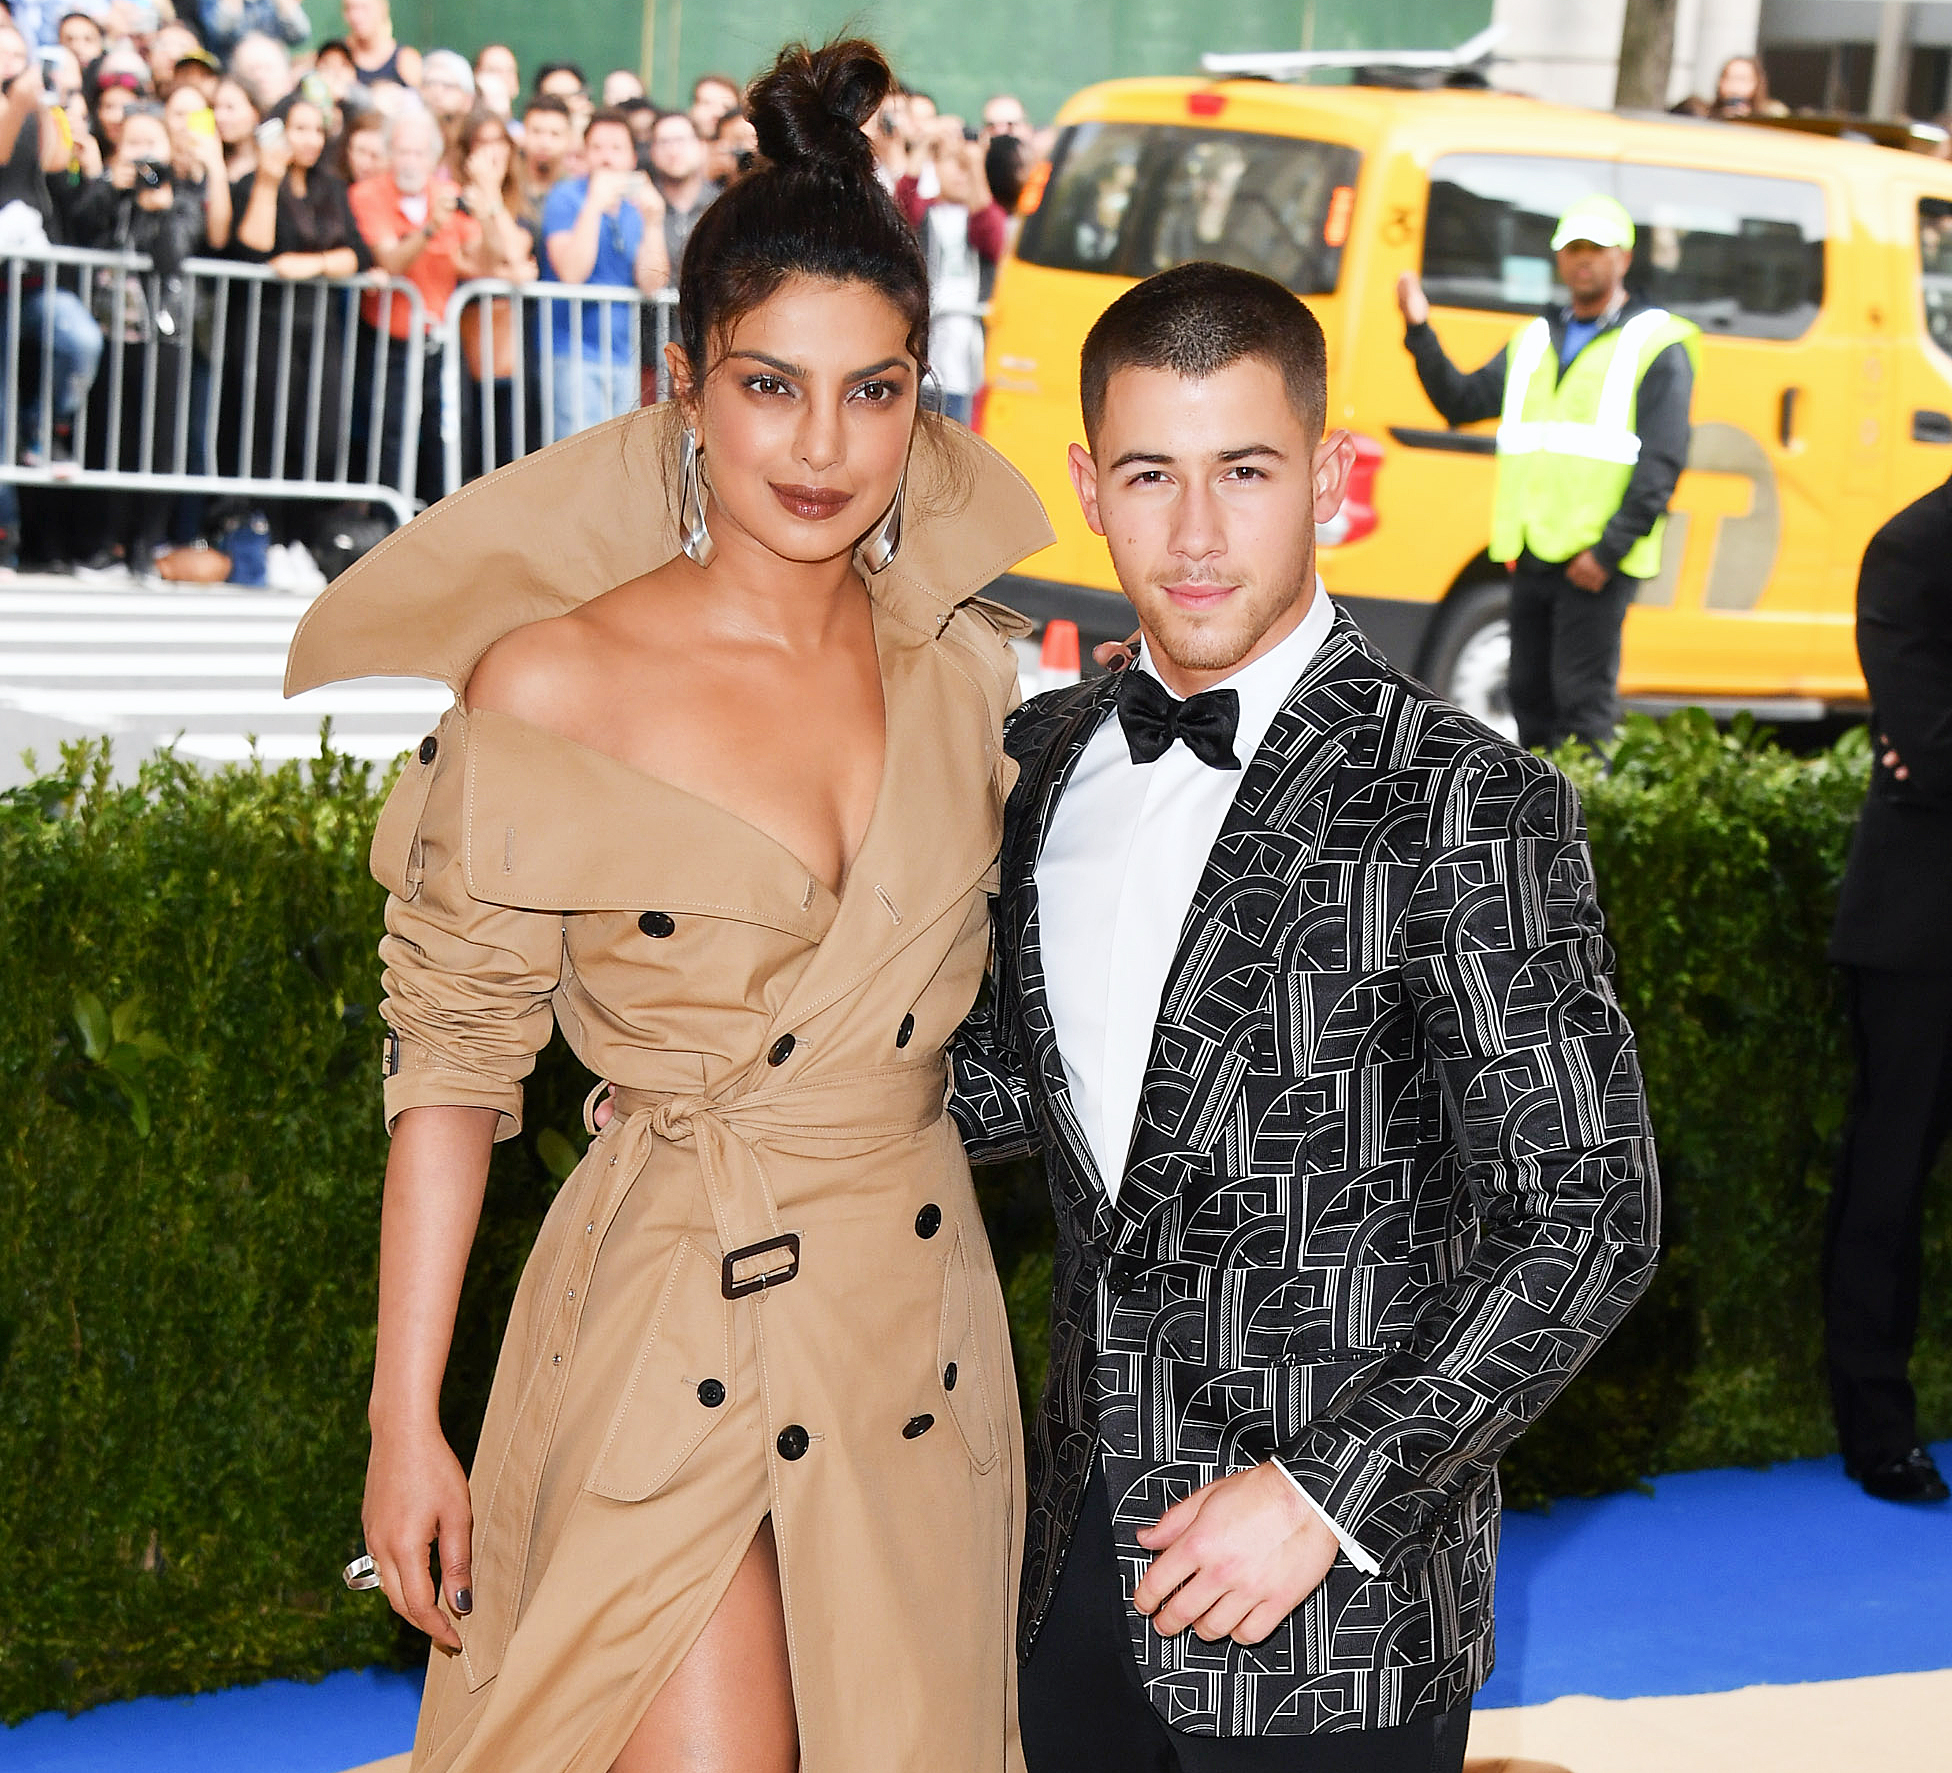 What's cooking? Priyanka Chopra spotted cosying up to Nick Jonas